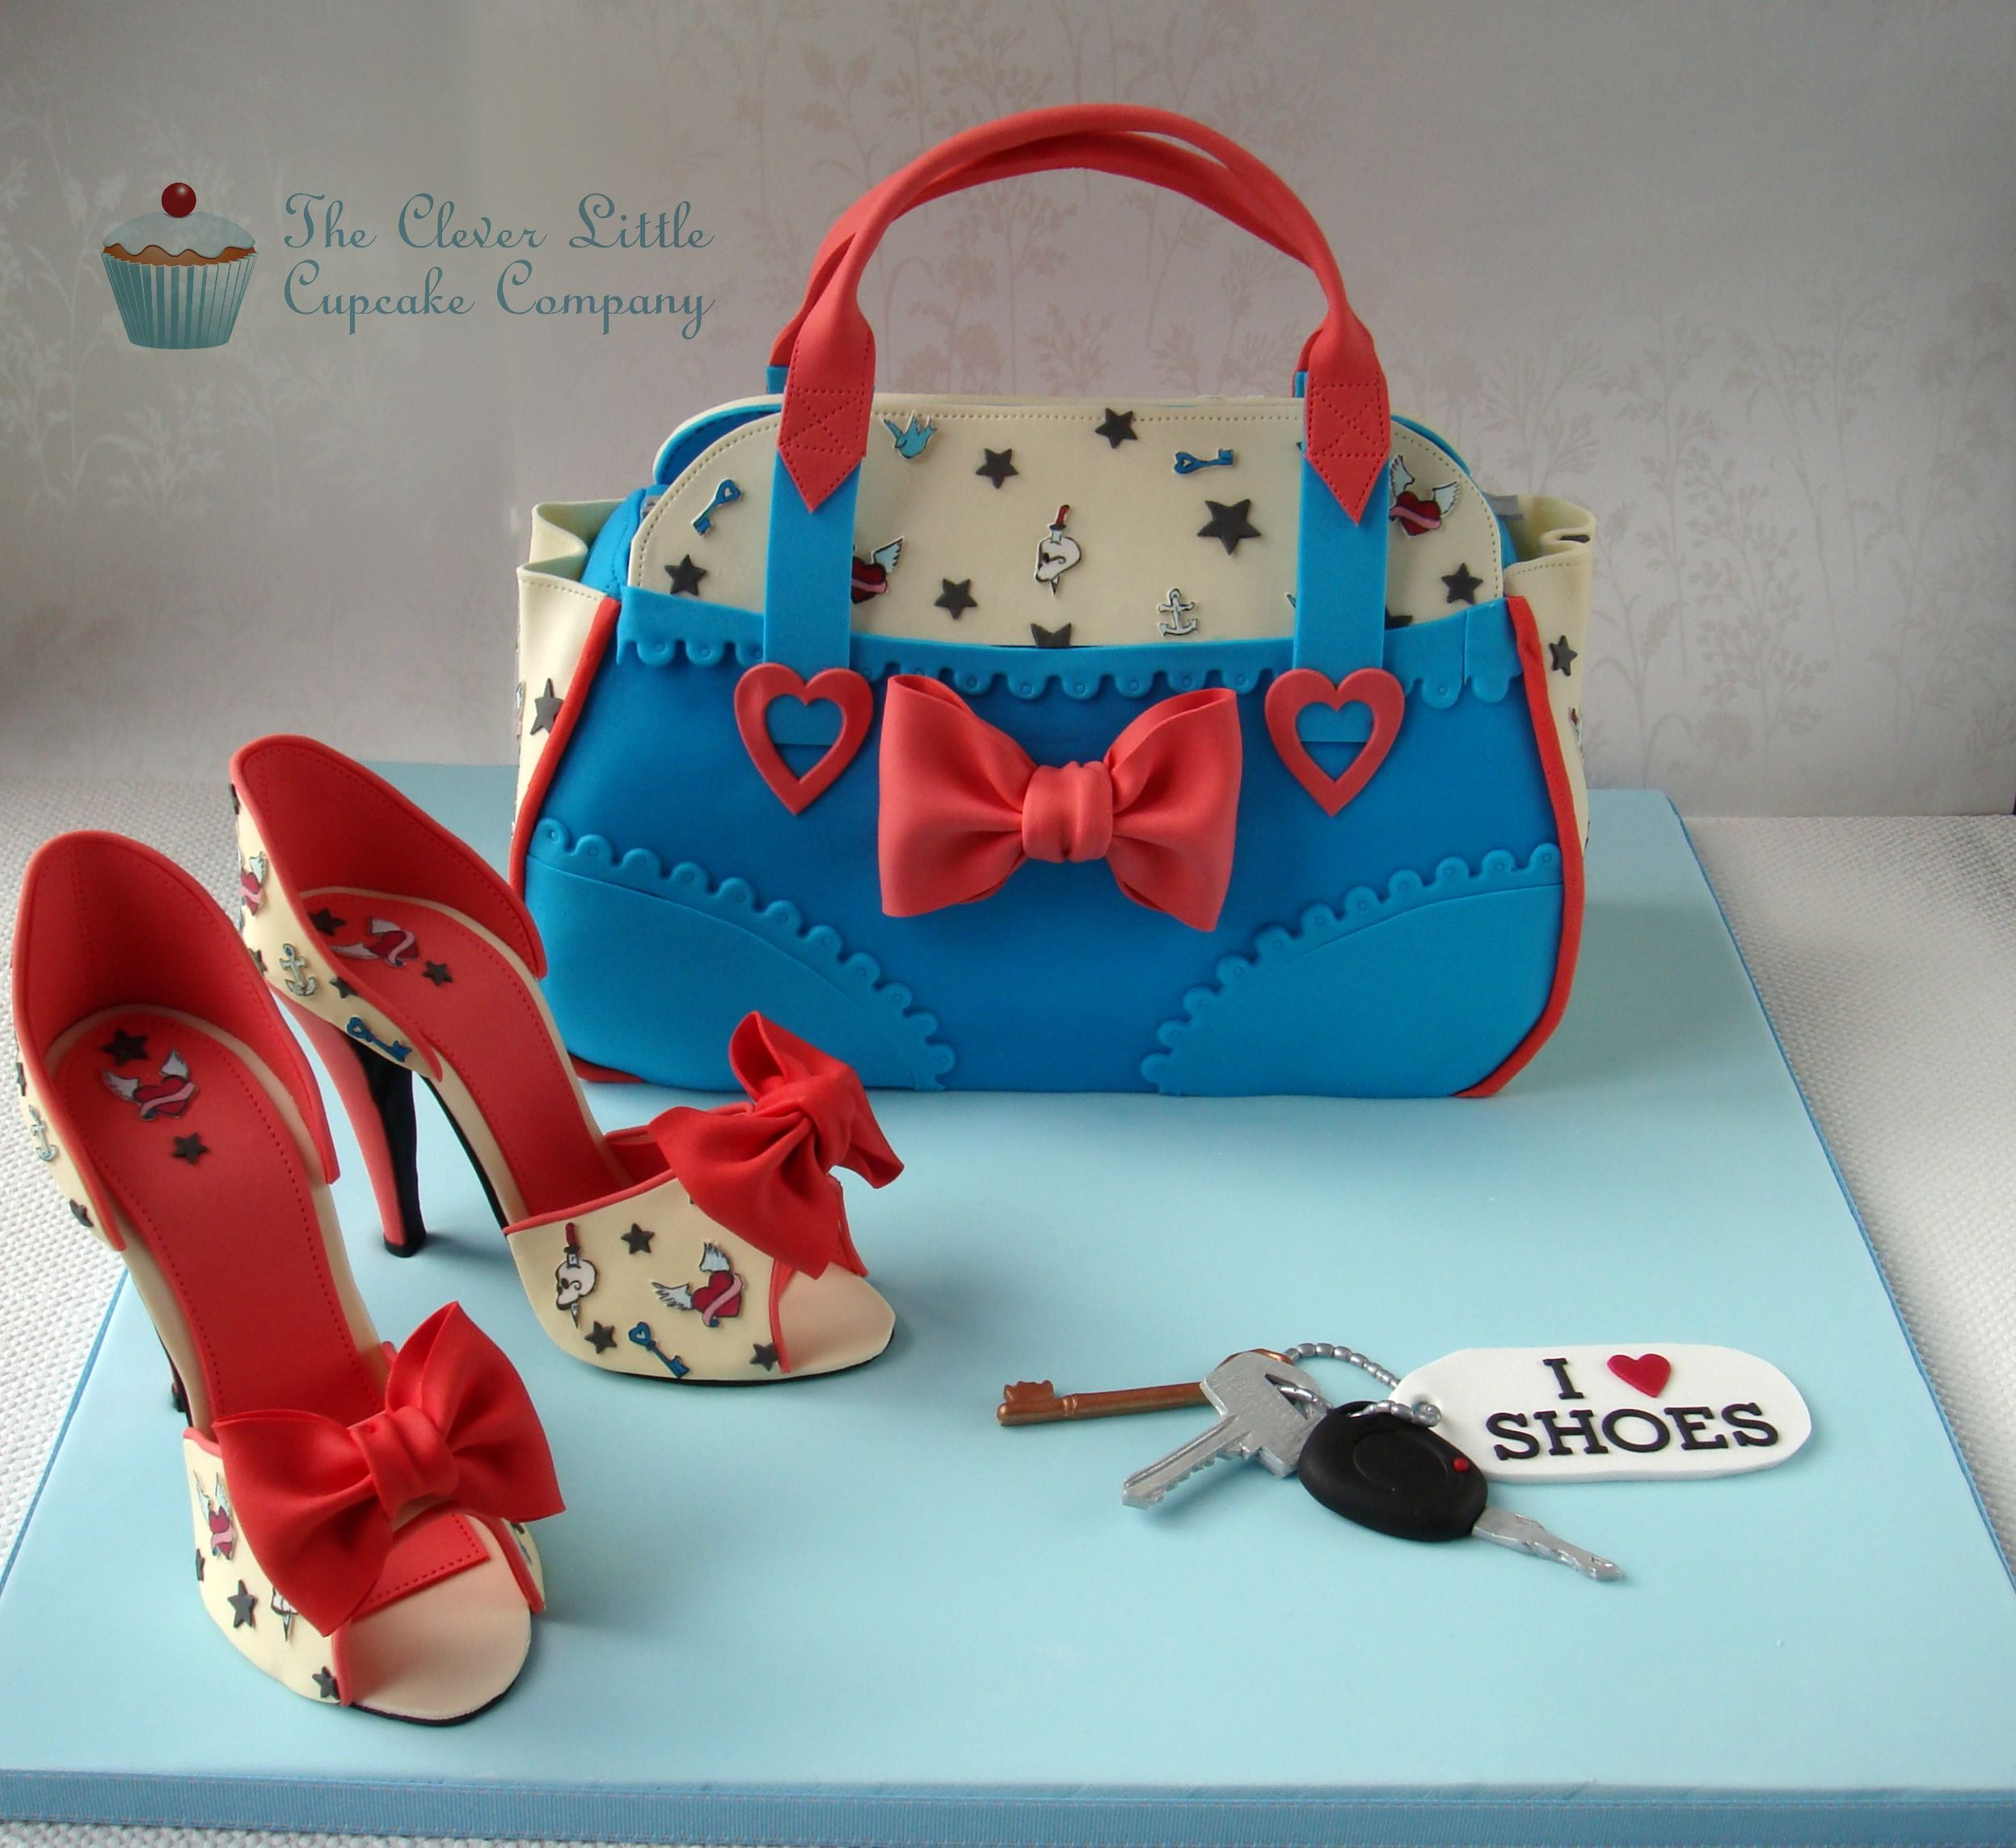 Cake International (Birmingham UK) entry - Shoes and Handbag - All edible with no supports.  The tattoo icons on the shoes and bag were hand painted and hand cut.  I won a gold medal at the competition for this entry! x